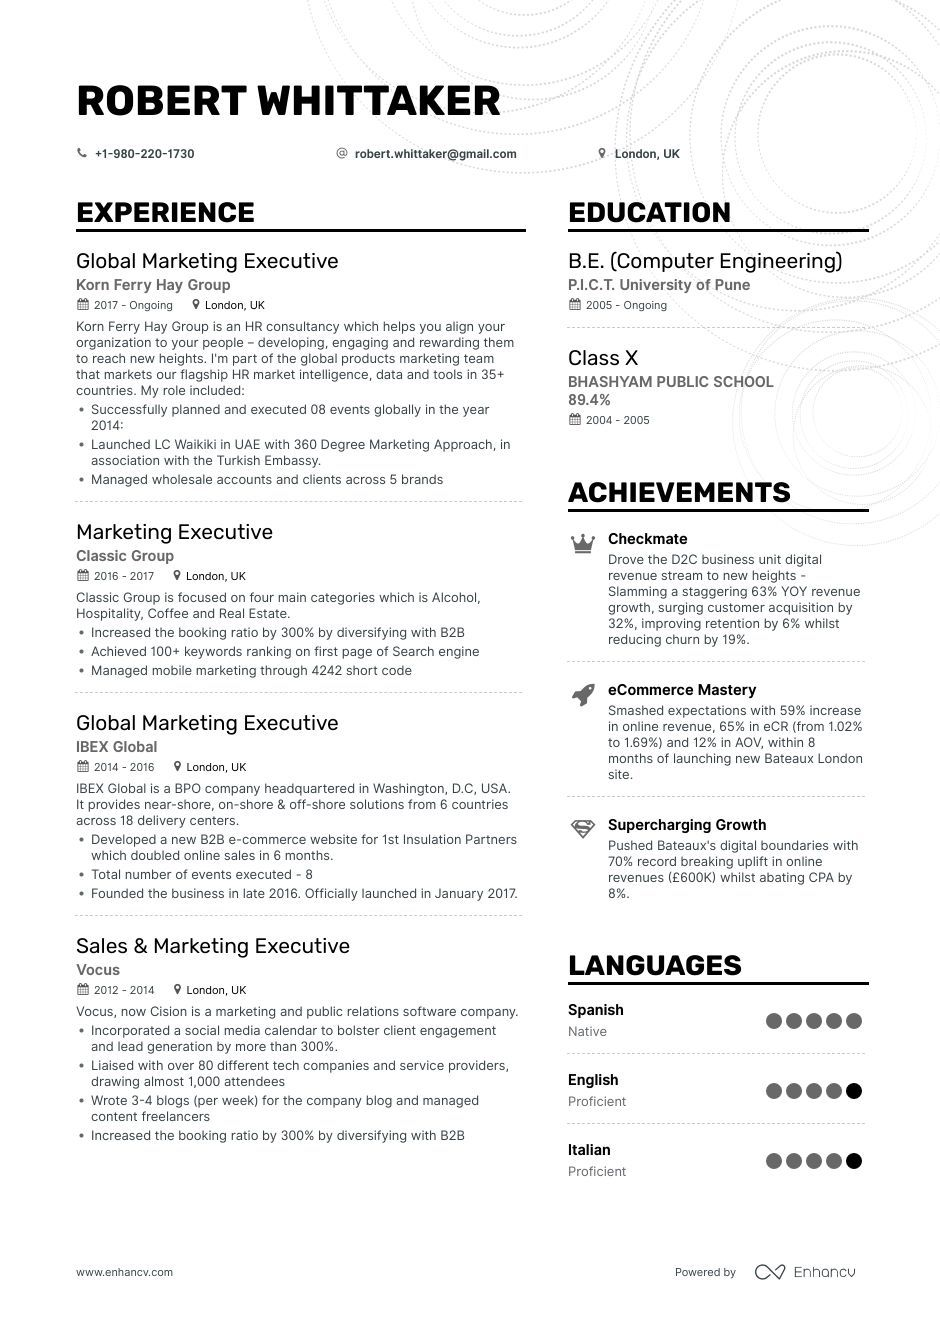 7+ Marketing Executive Resume Examples and Writing Guide